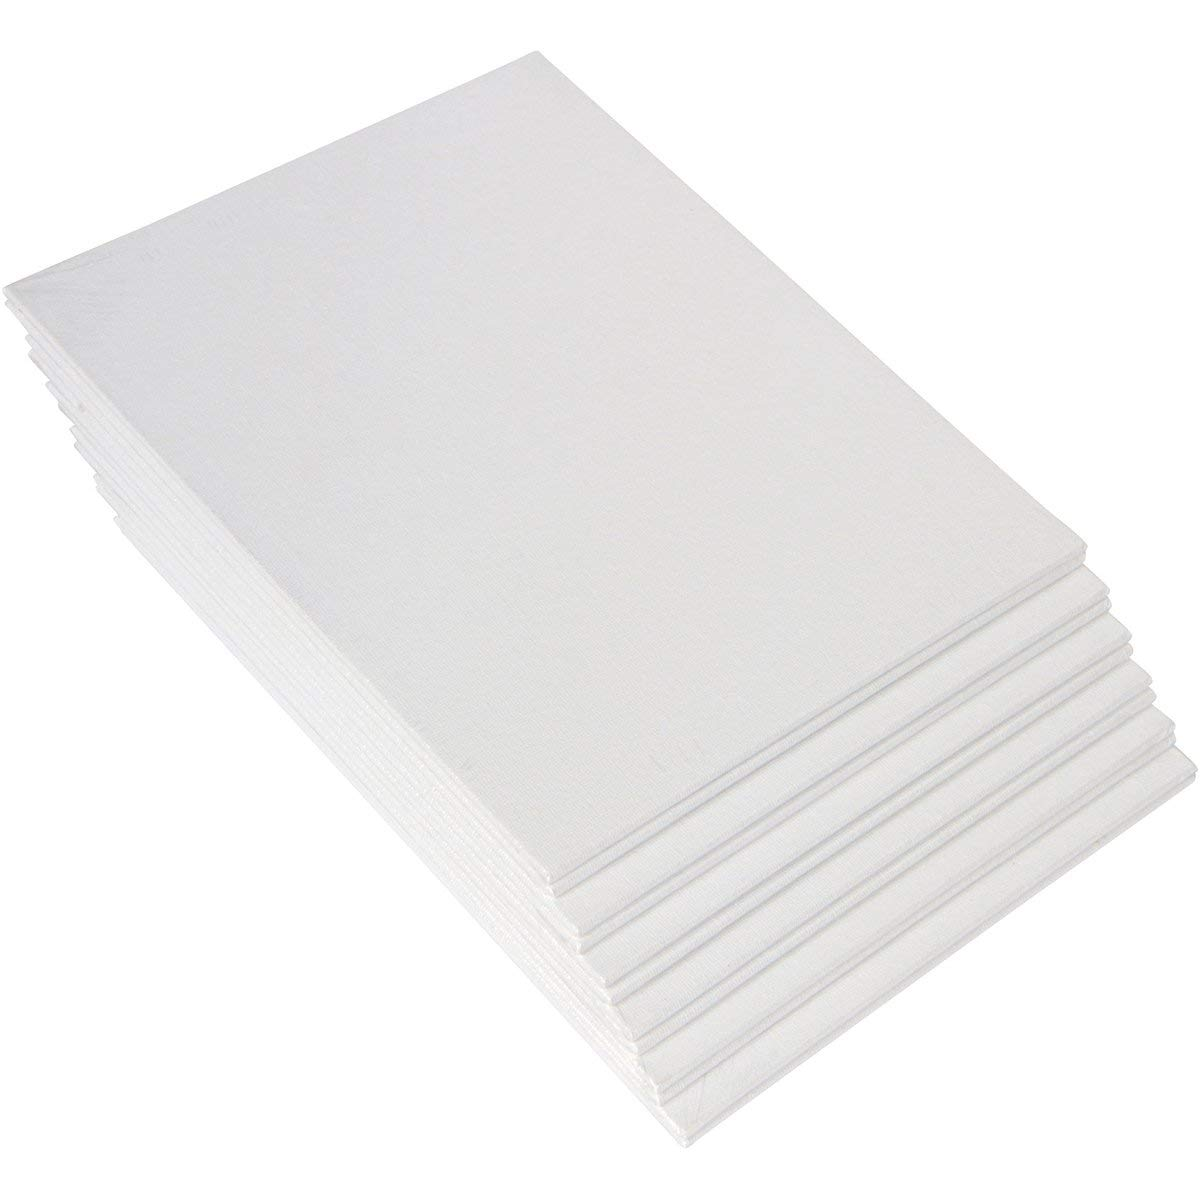 12 Pack Canvas Panel,Acid Free,Artist Canvas Boards,8x10 Inch,Academy Art Supply Value Pack Blank Canvas Panel Boards